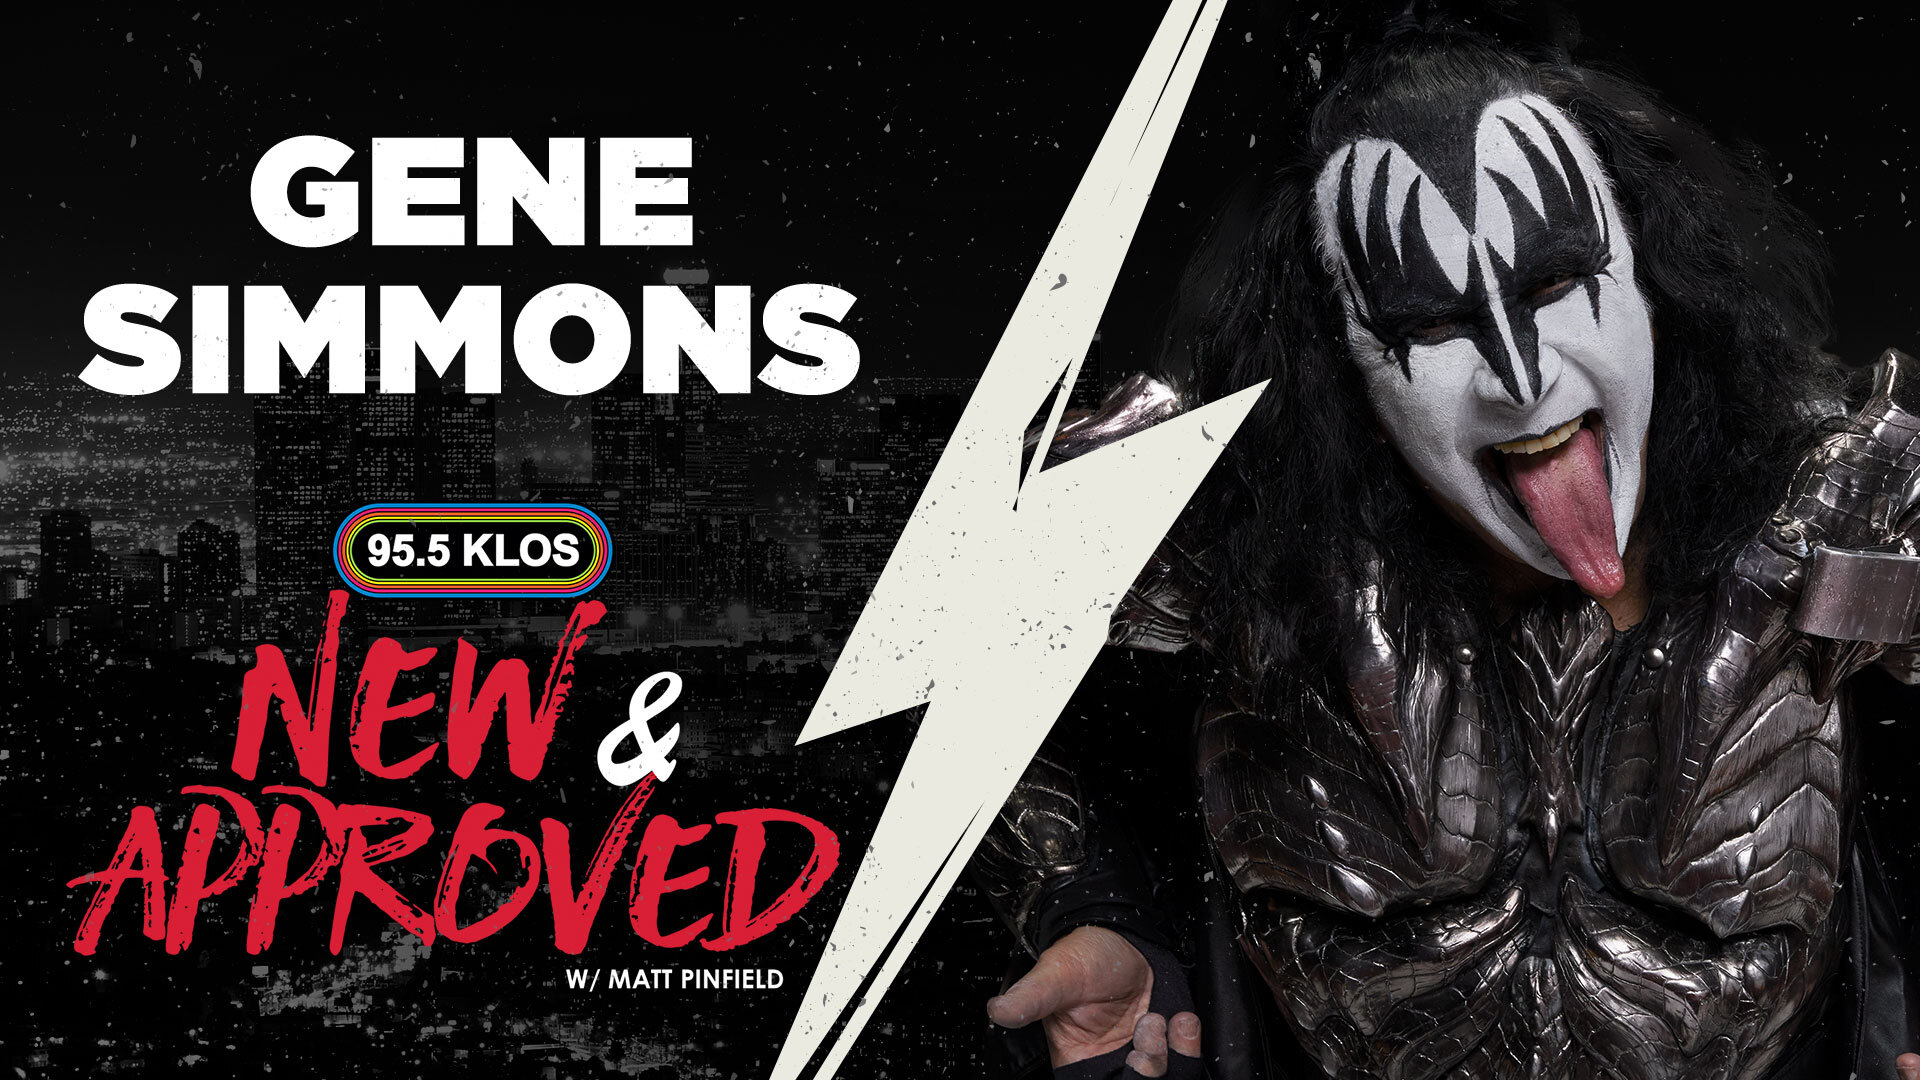 Gene Simons Discusses KISS's Upcoming Tour and The Current State Of Rock W/ Matt Pinfield on New & Approved